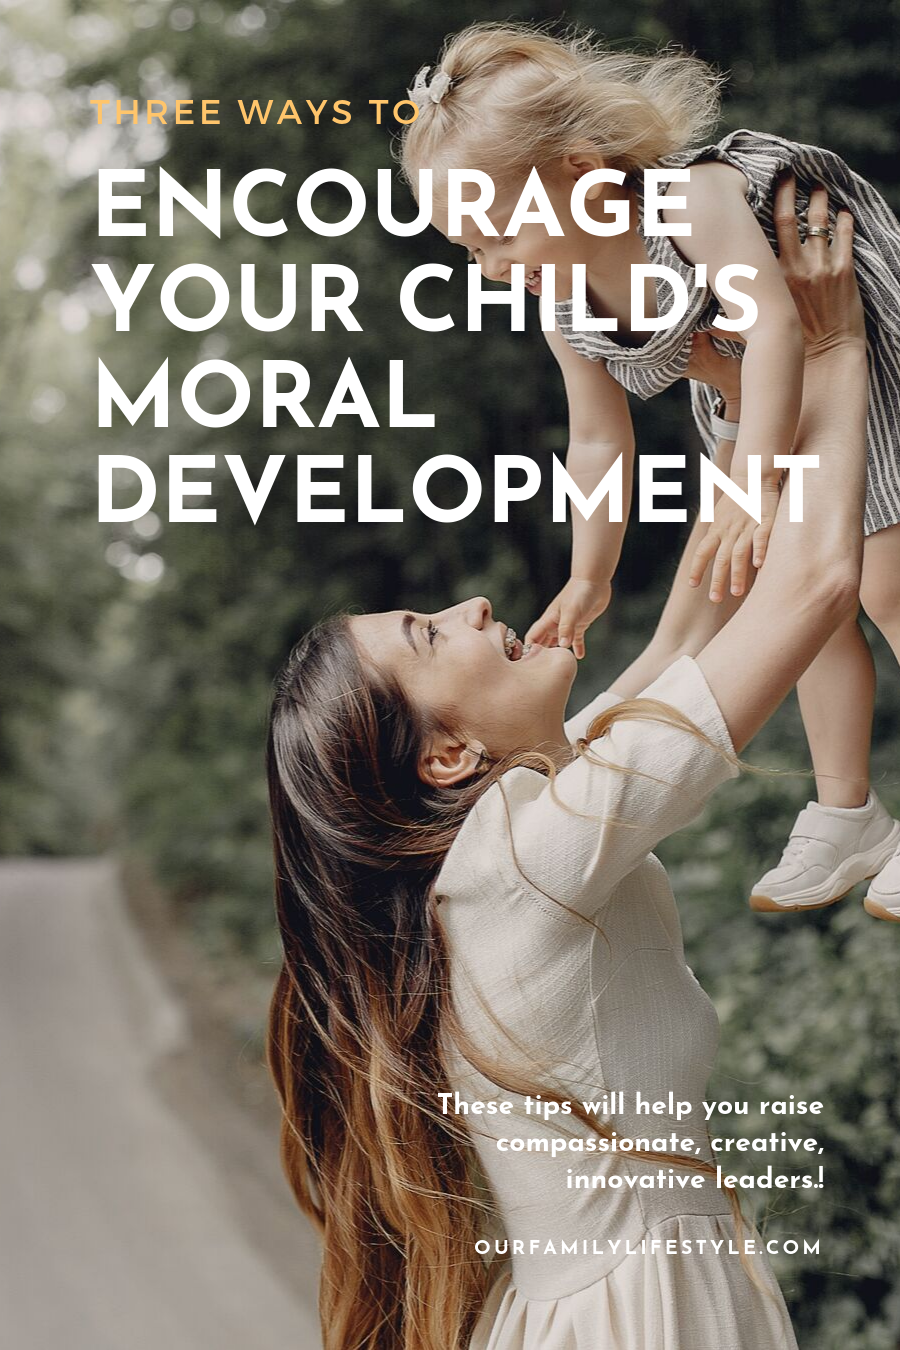 Three Ways to Encourage Your Child's Moral Development